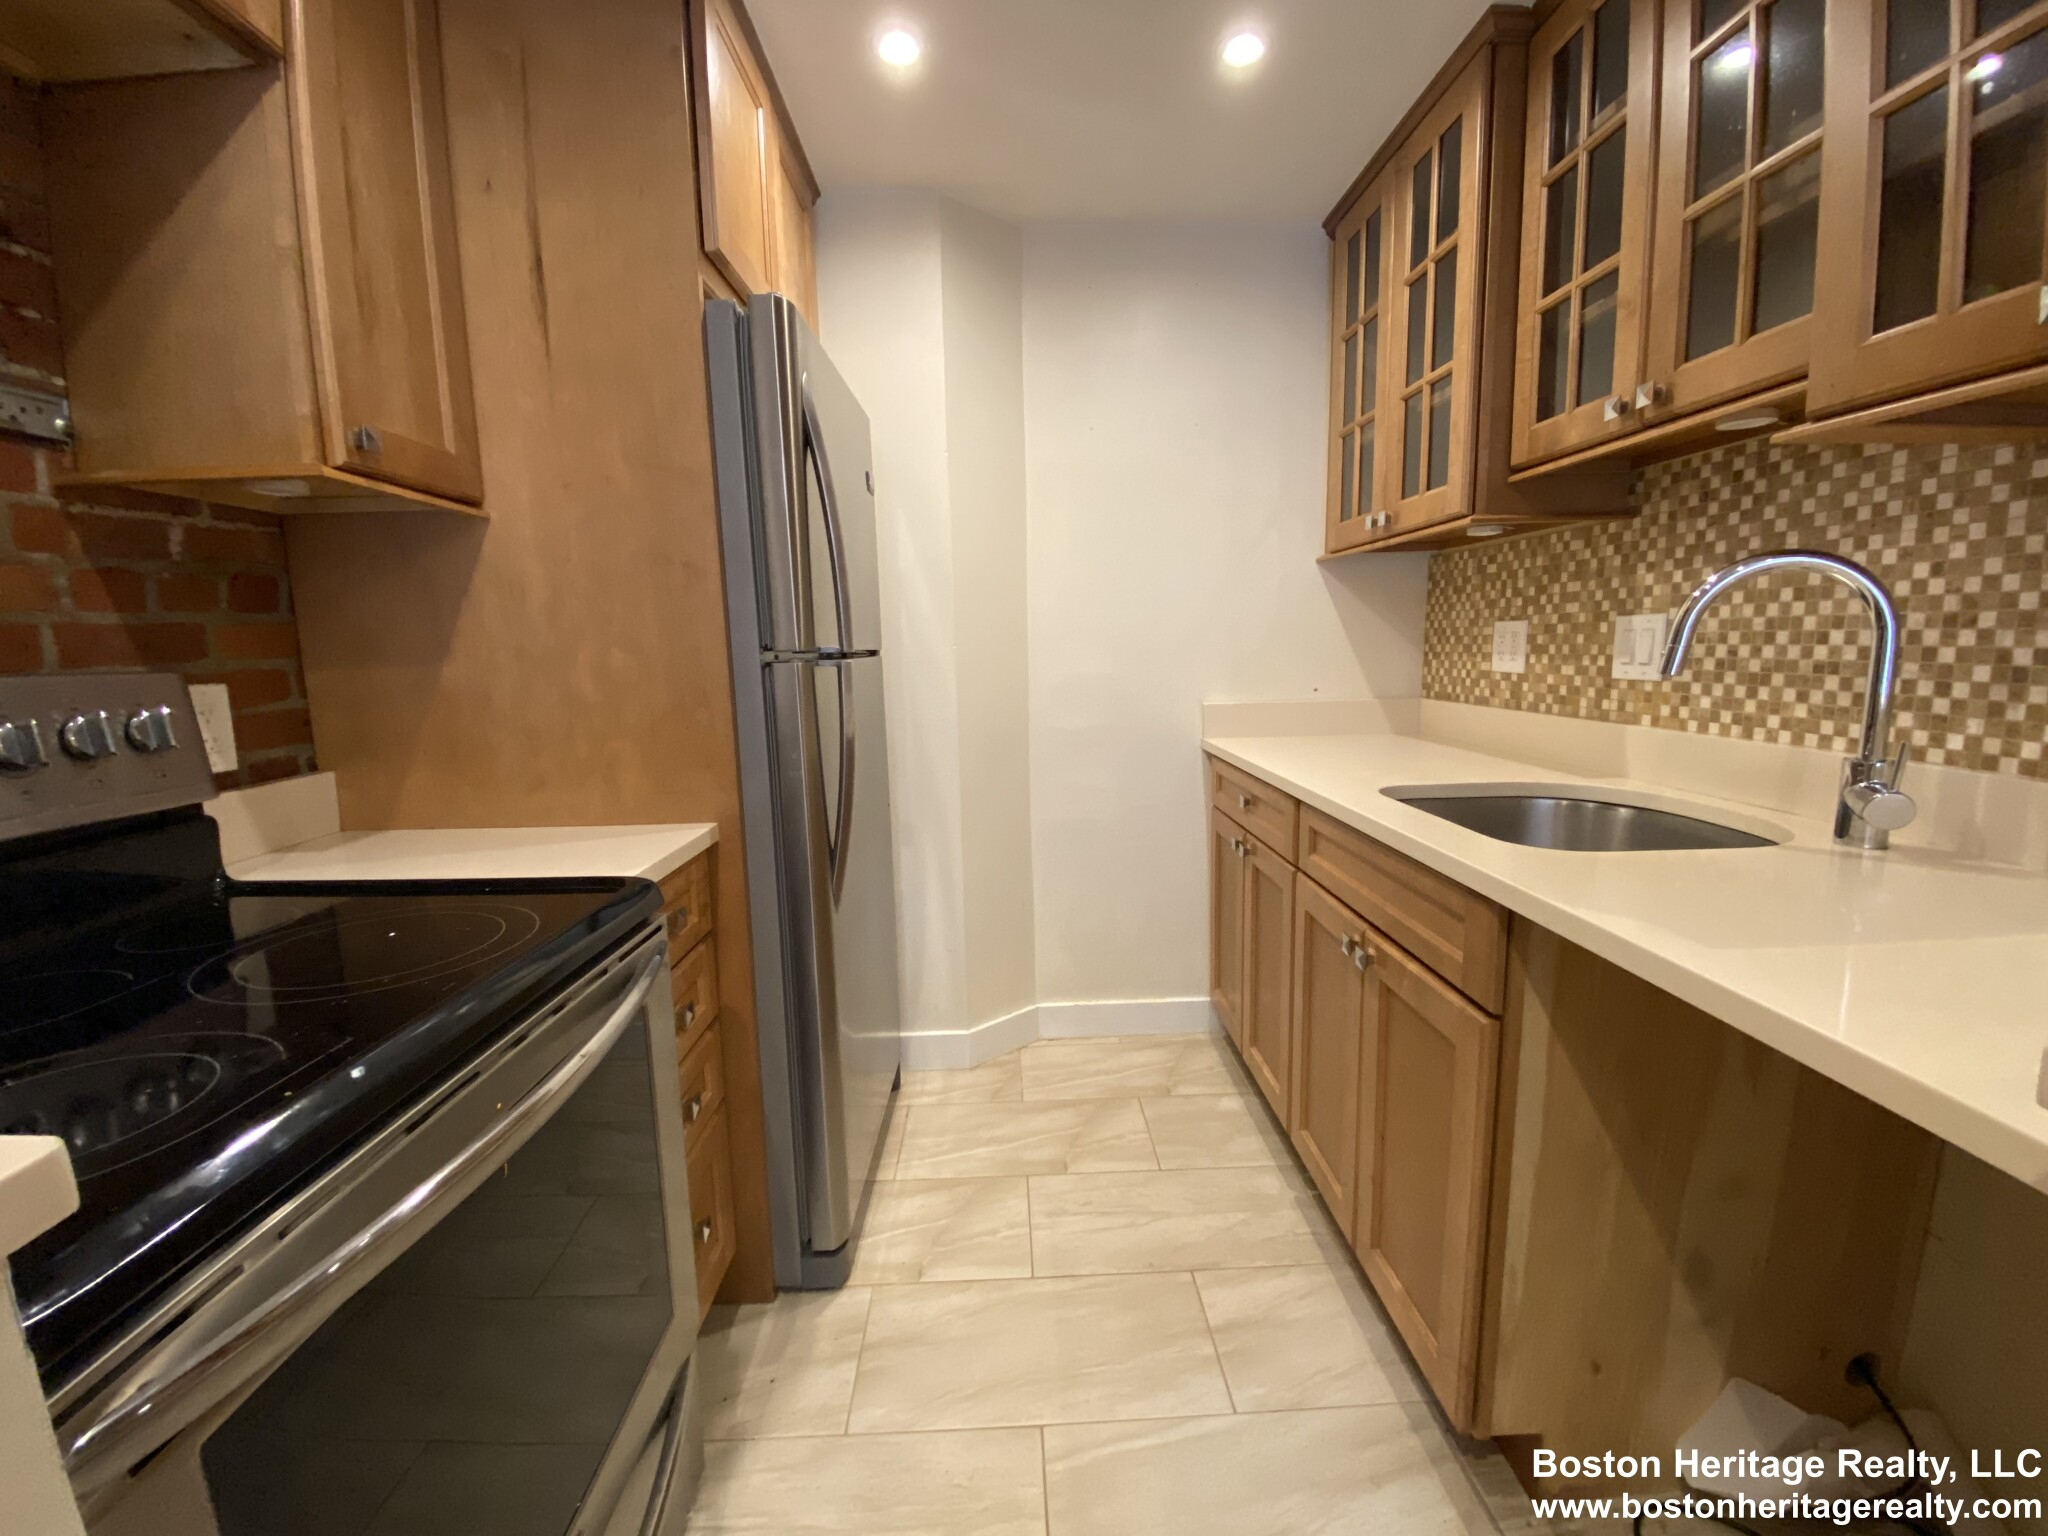 2 Beds, 1.5 Baths apartment in Boston, Fenway for $3,100